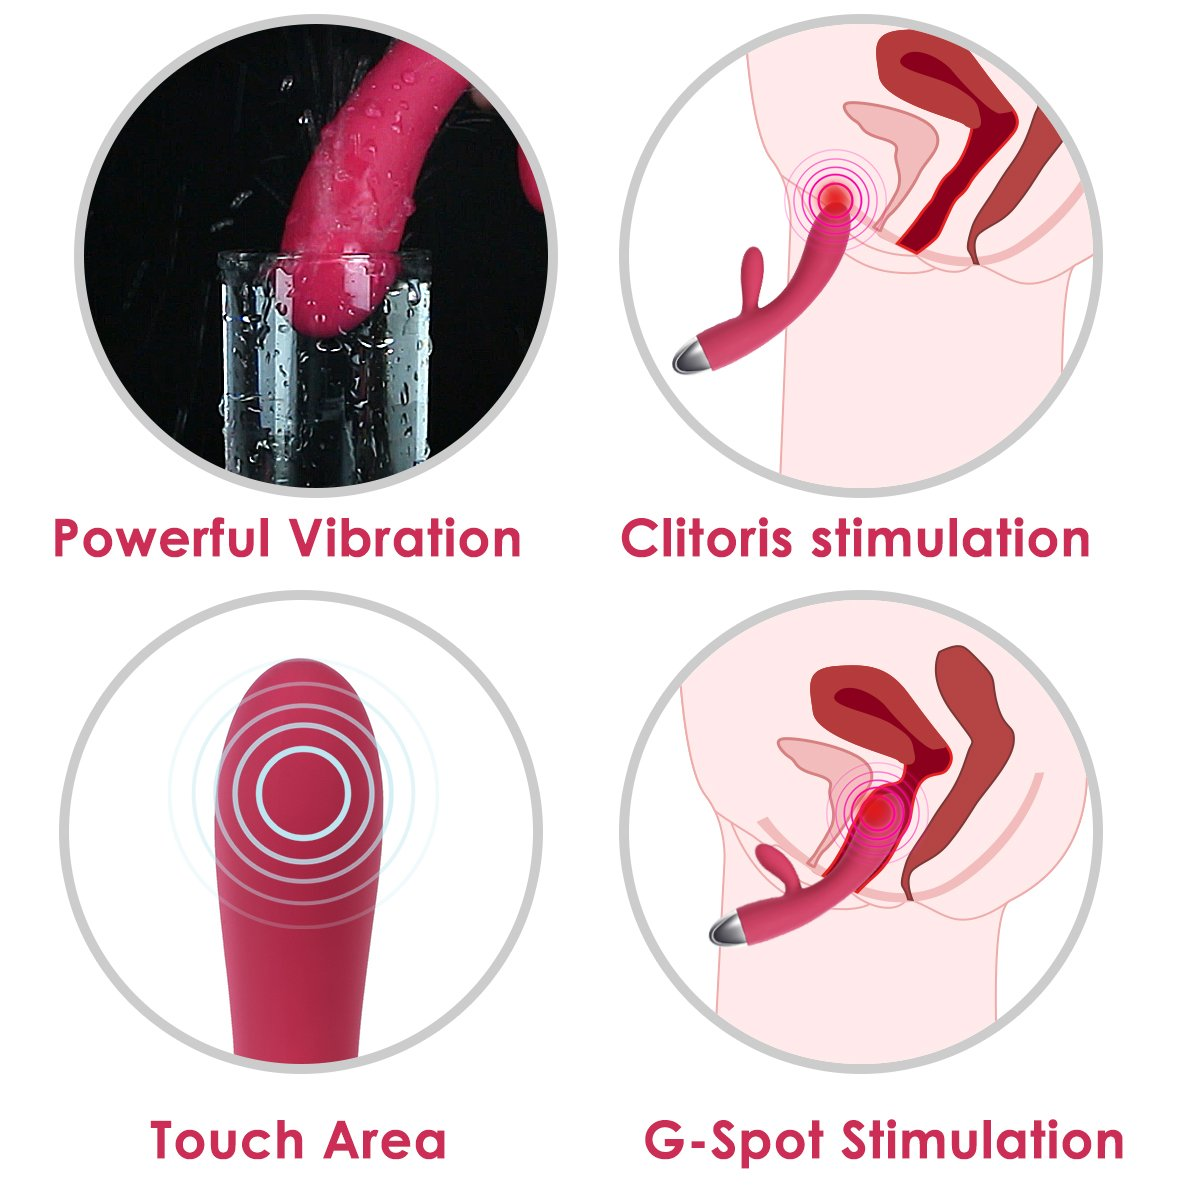 SVAKOM Lorna Touch Sensor Waterproof Rabbit Vibrator G-spot Clitoral Stimulators Dildos Wand Massagers for Women (Color Random)